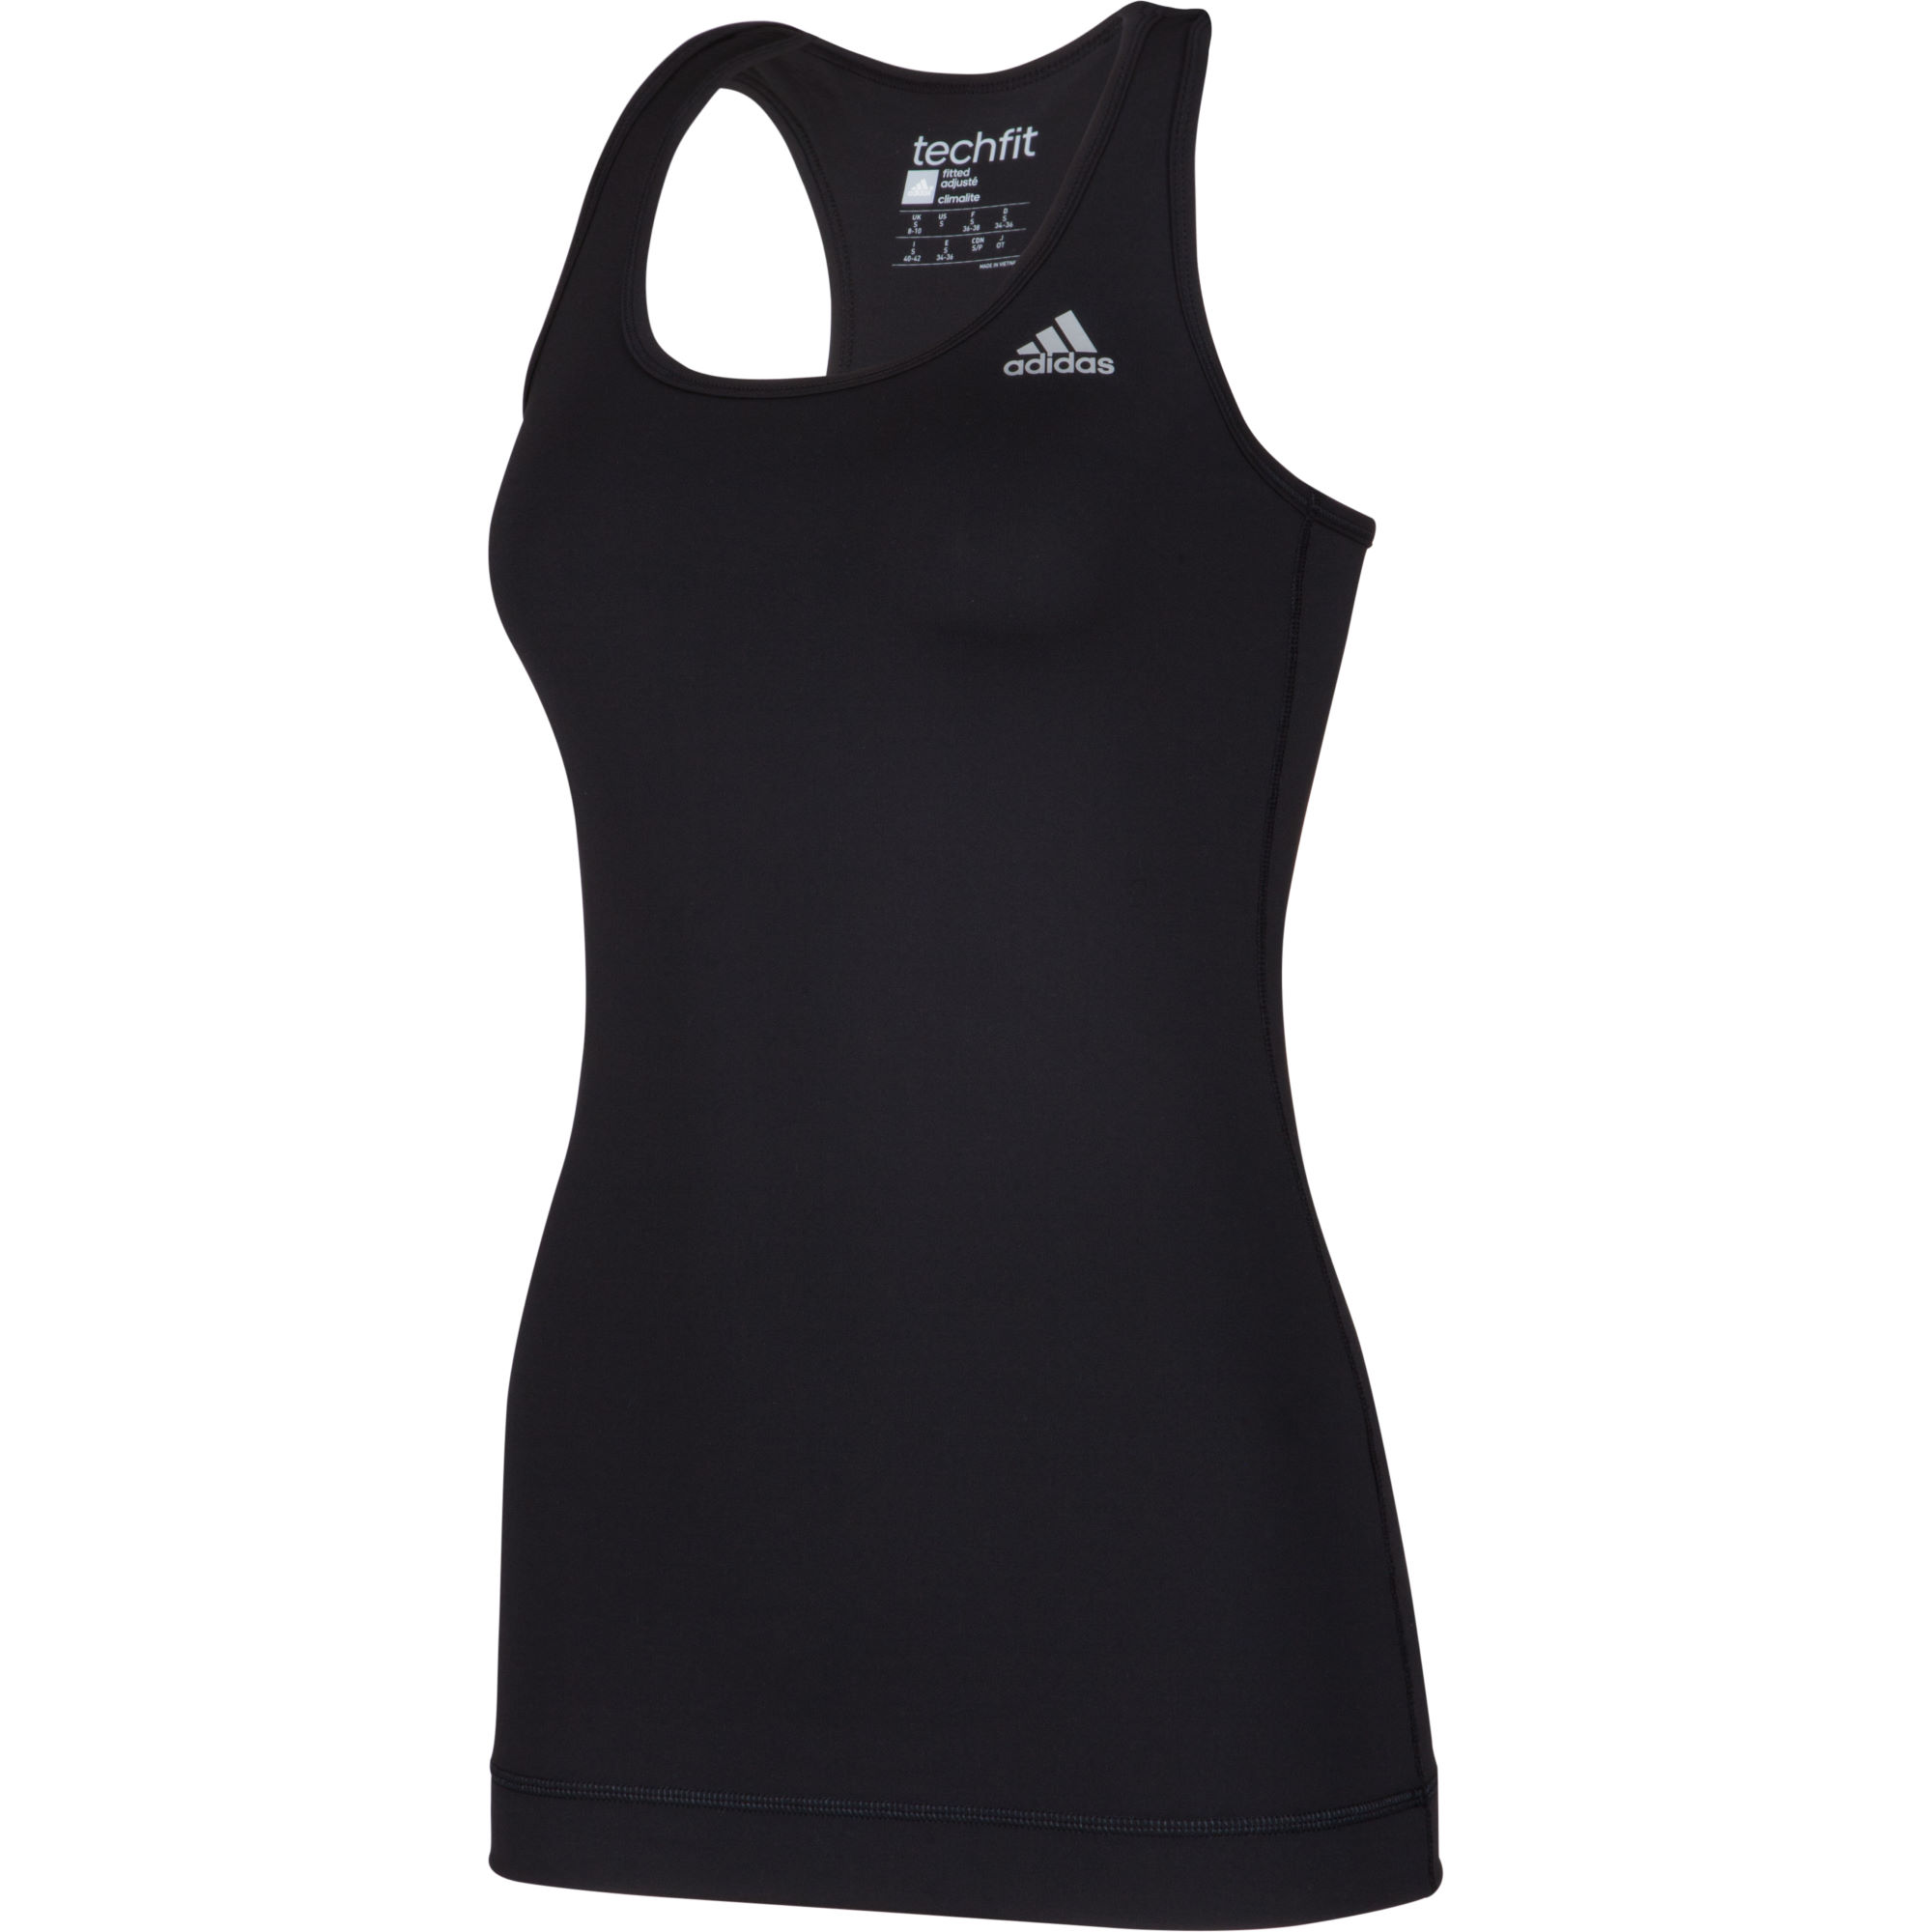 wiggle adidas women 39 s techfit tank top aw15 running. Black Bedroom Furniture Sets. Home Design Ideas